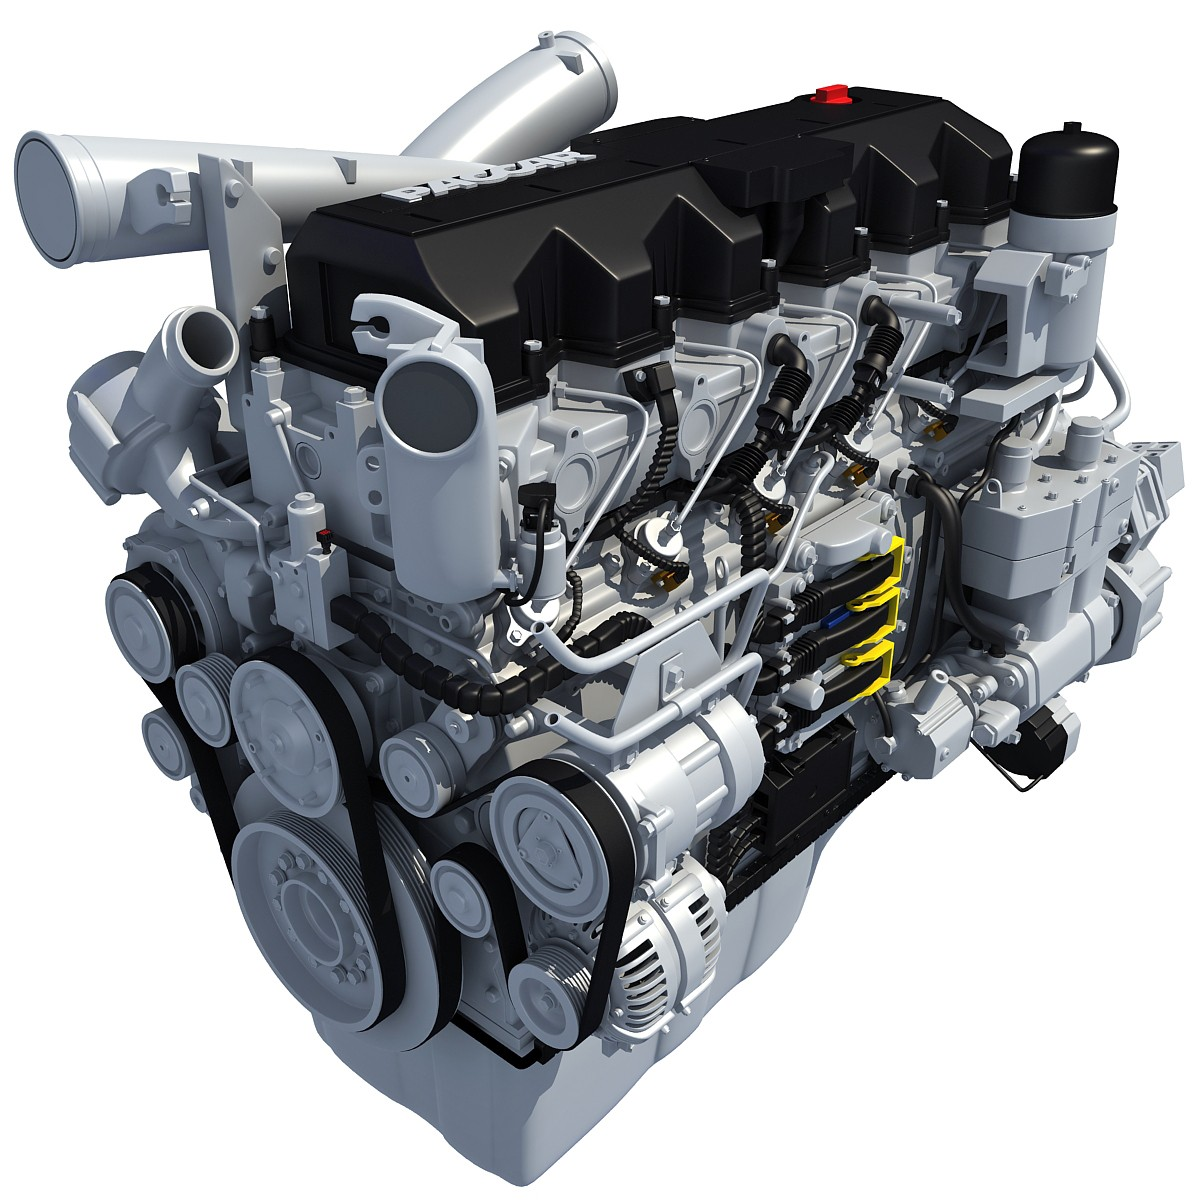 Related Wallpapers Home Heavy Duty Engines Paccar Mx Truck Engine 1200x1200